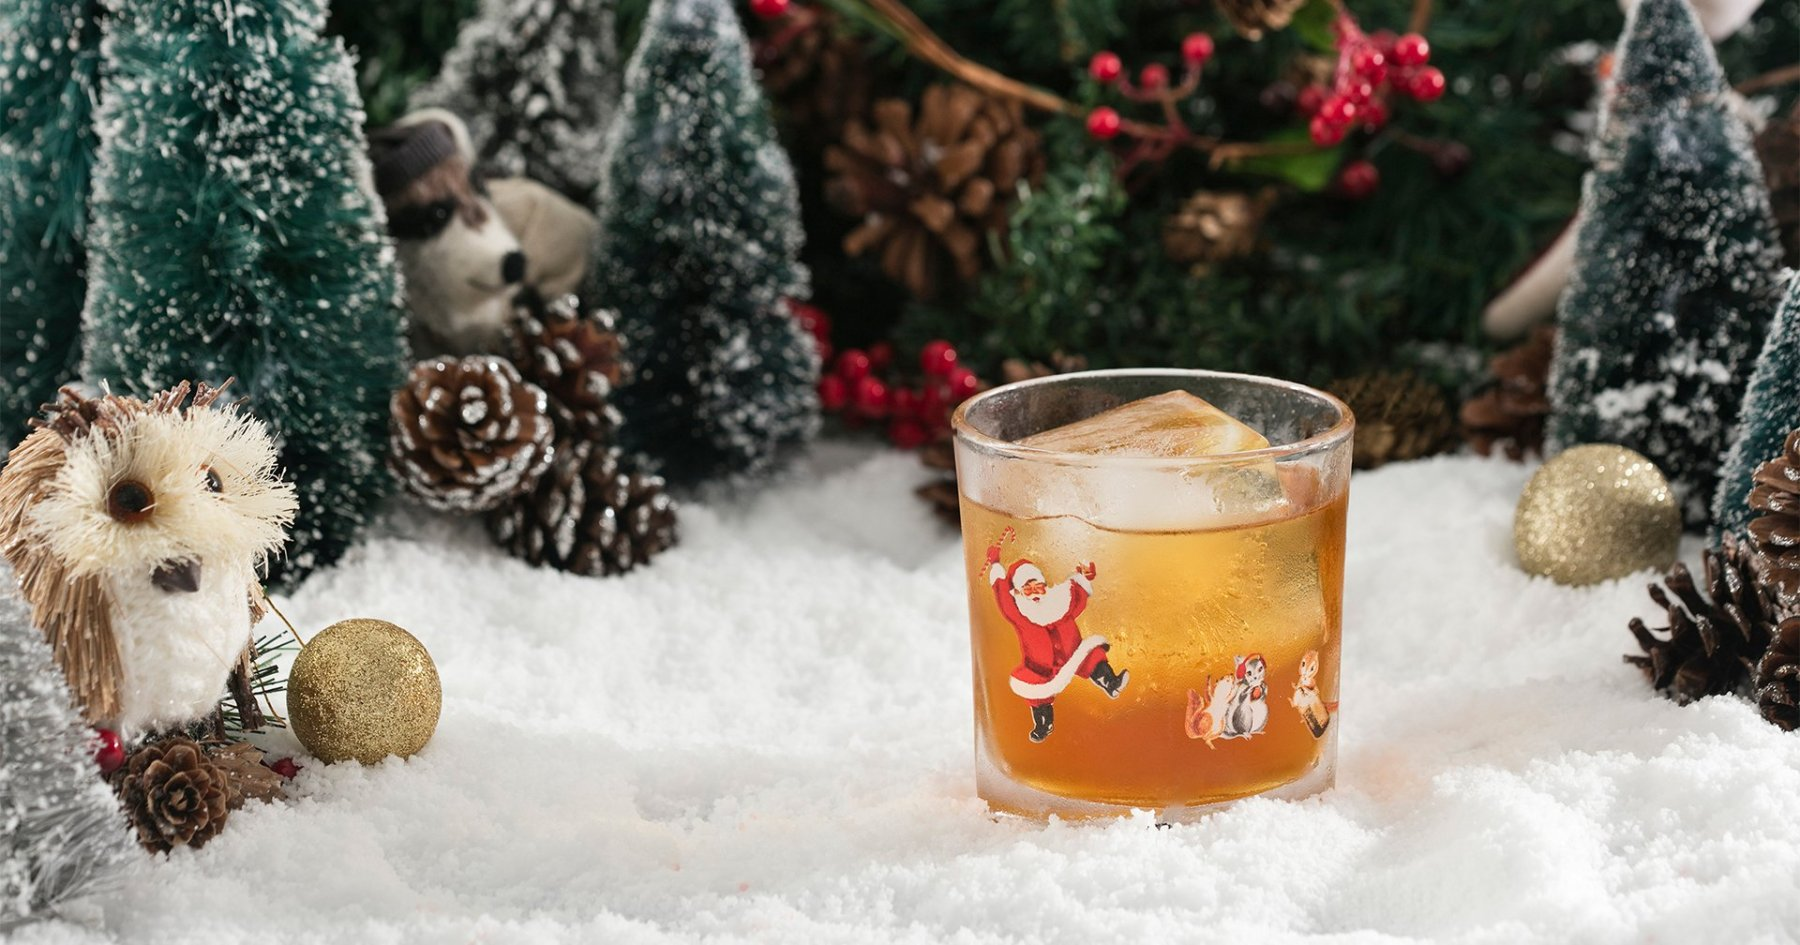 This Holiday Pop-Up Bar Serves Impossibly Festive Drinks